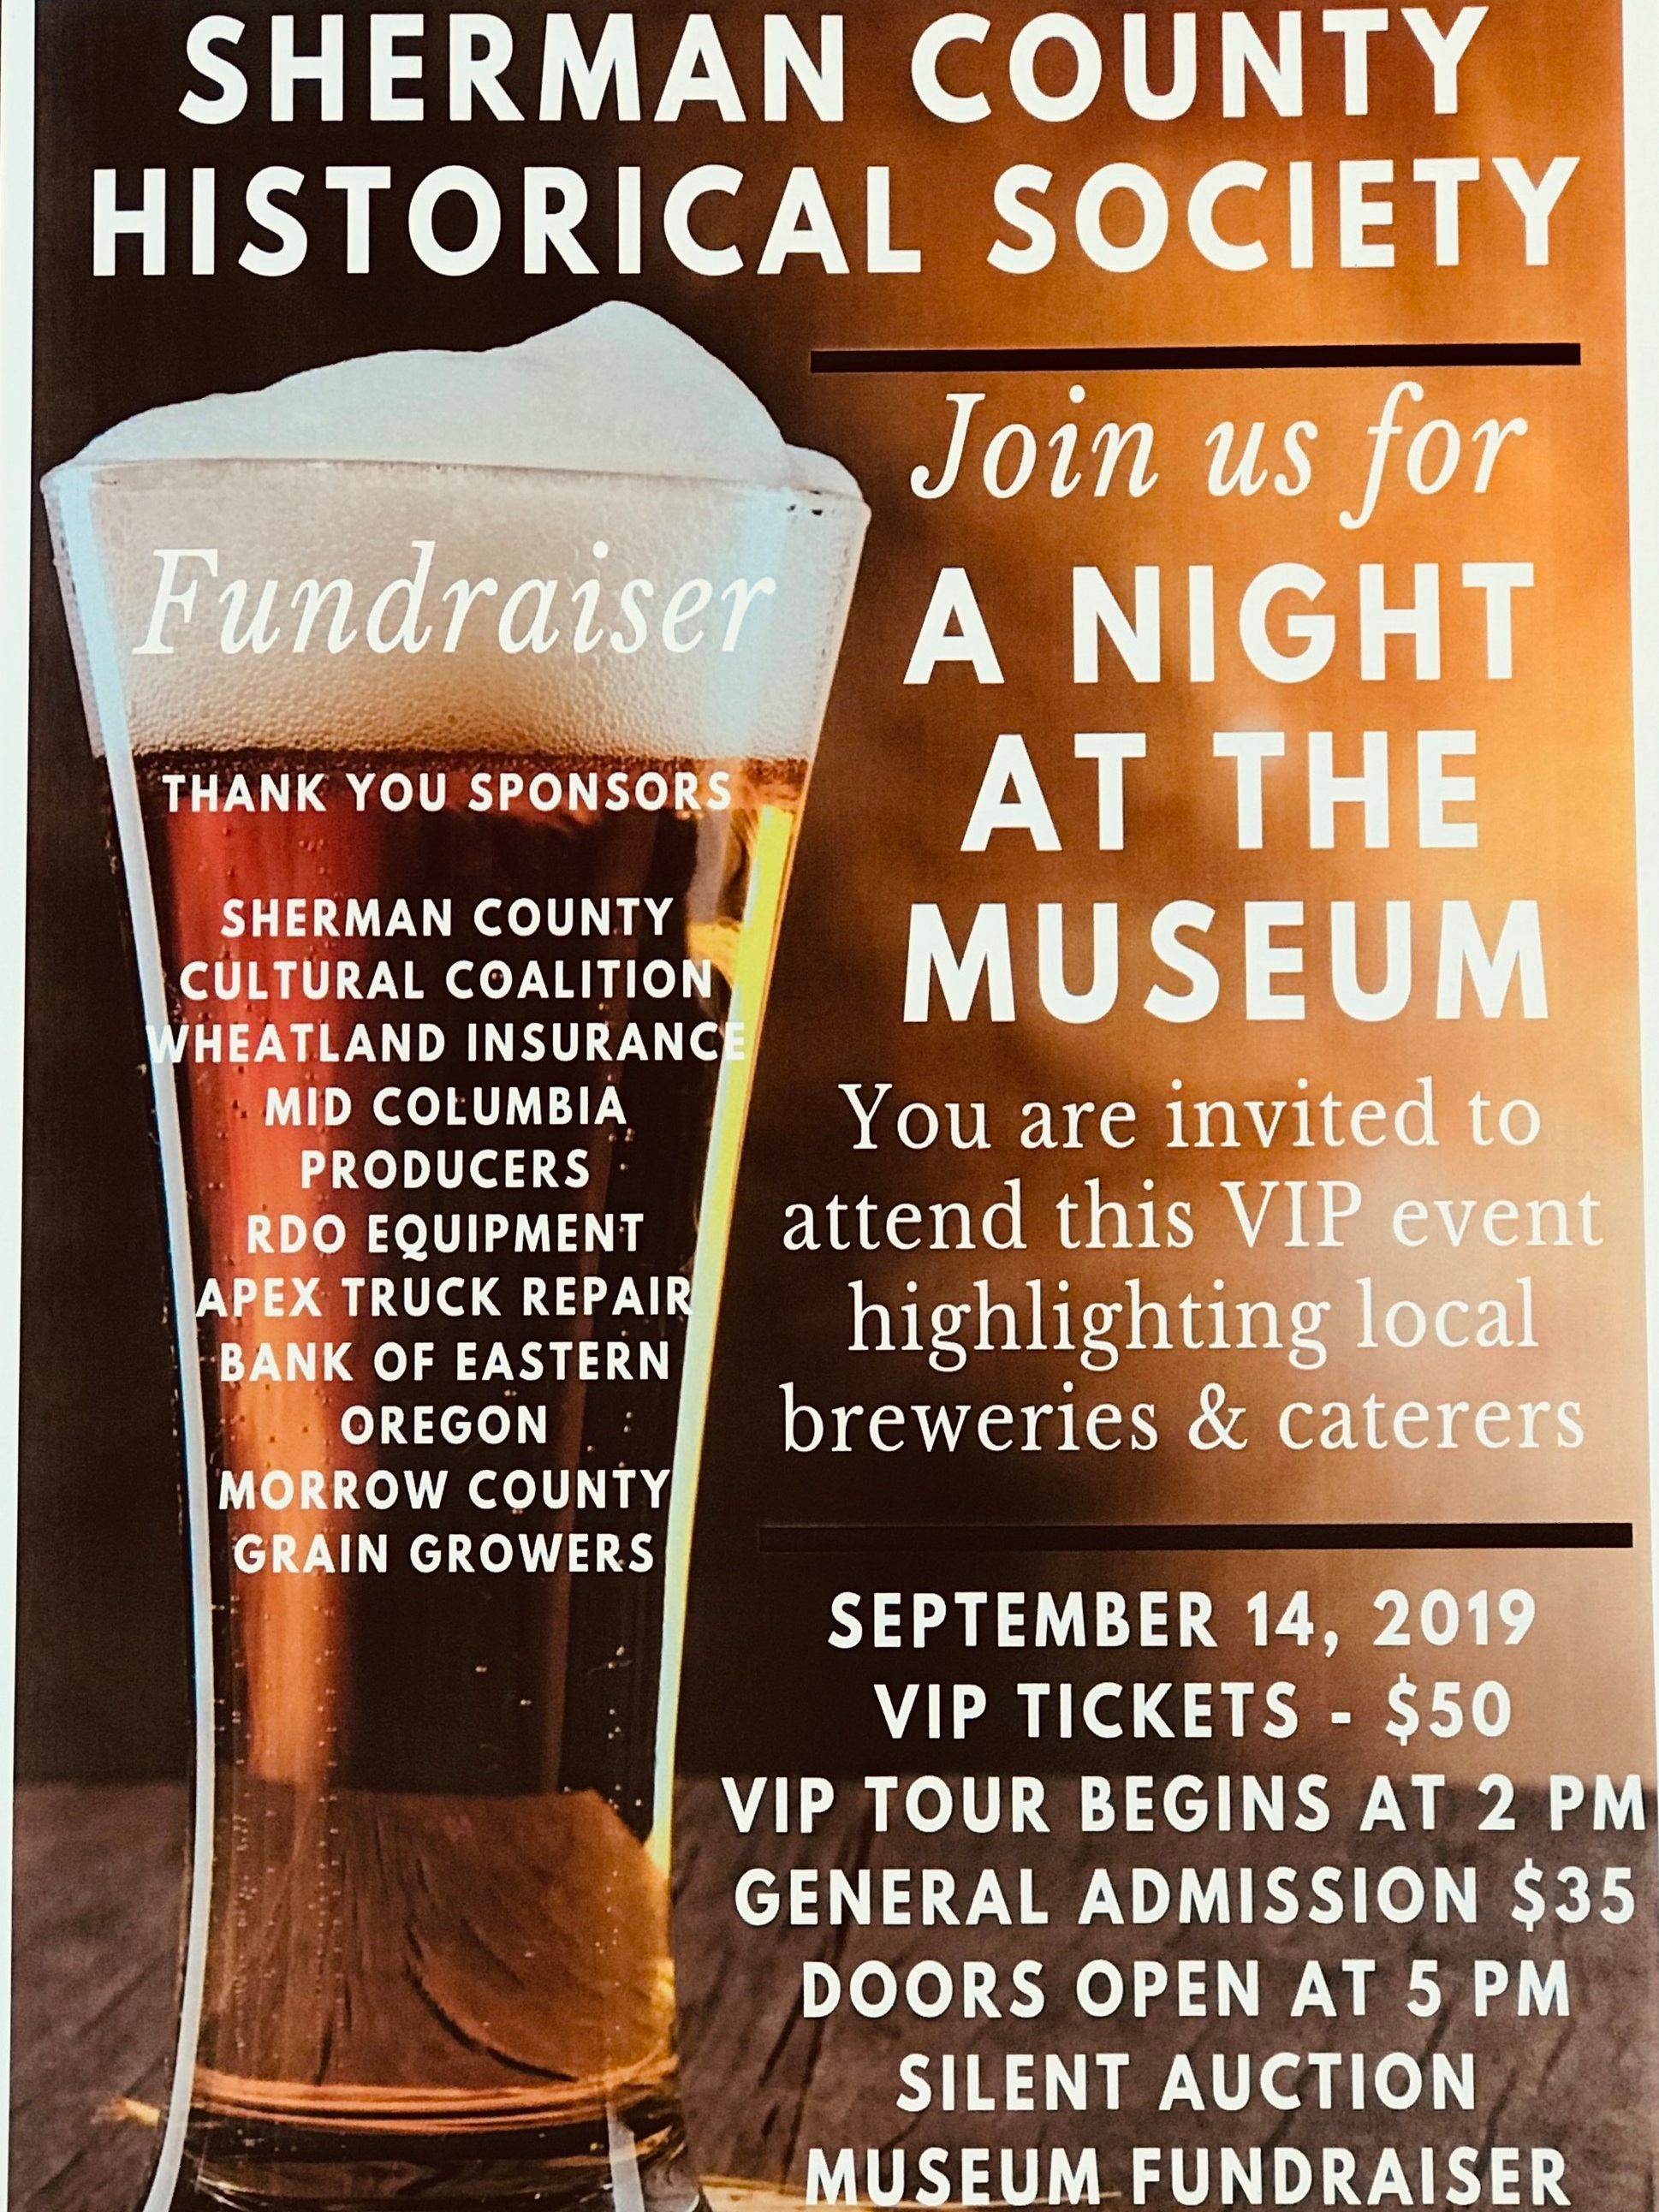 A Night at the Museum, Sept. 14th - Limited tickets available for purchase at the Sherman County Historical Museum. VIP tickets $50 each or Regular tickets $35 for this first annual Fundraiser.The Sherman County Historical Society Event Committee will be showcasing local breweries that will bring their favorite brews for an evening at the museum with dinner provided by local caterers.Limited number of VIP ticket holders will be bused to a secret location in the county, receive a special brew sample with appetizers, an exclusive tour of the mystery venue and then bused to the Museum in time for the main event.All money earned will be used for museum operations and general improvements for the historical society. There will also be a silent auction at this event and donations are also welcome. See you September 14th!